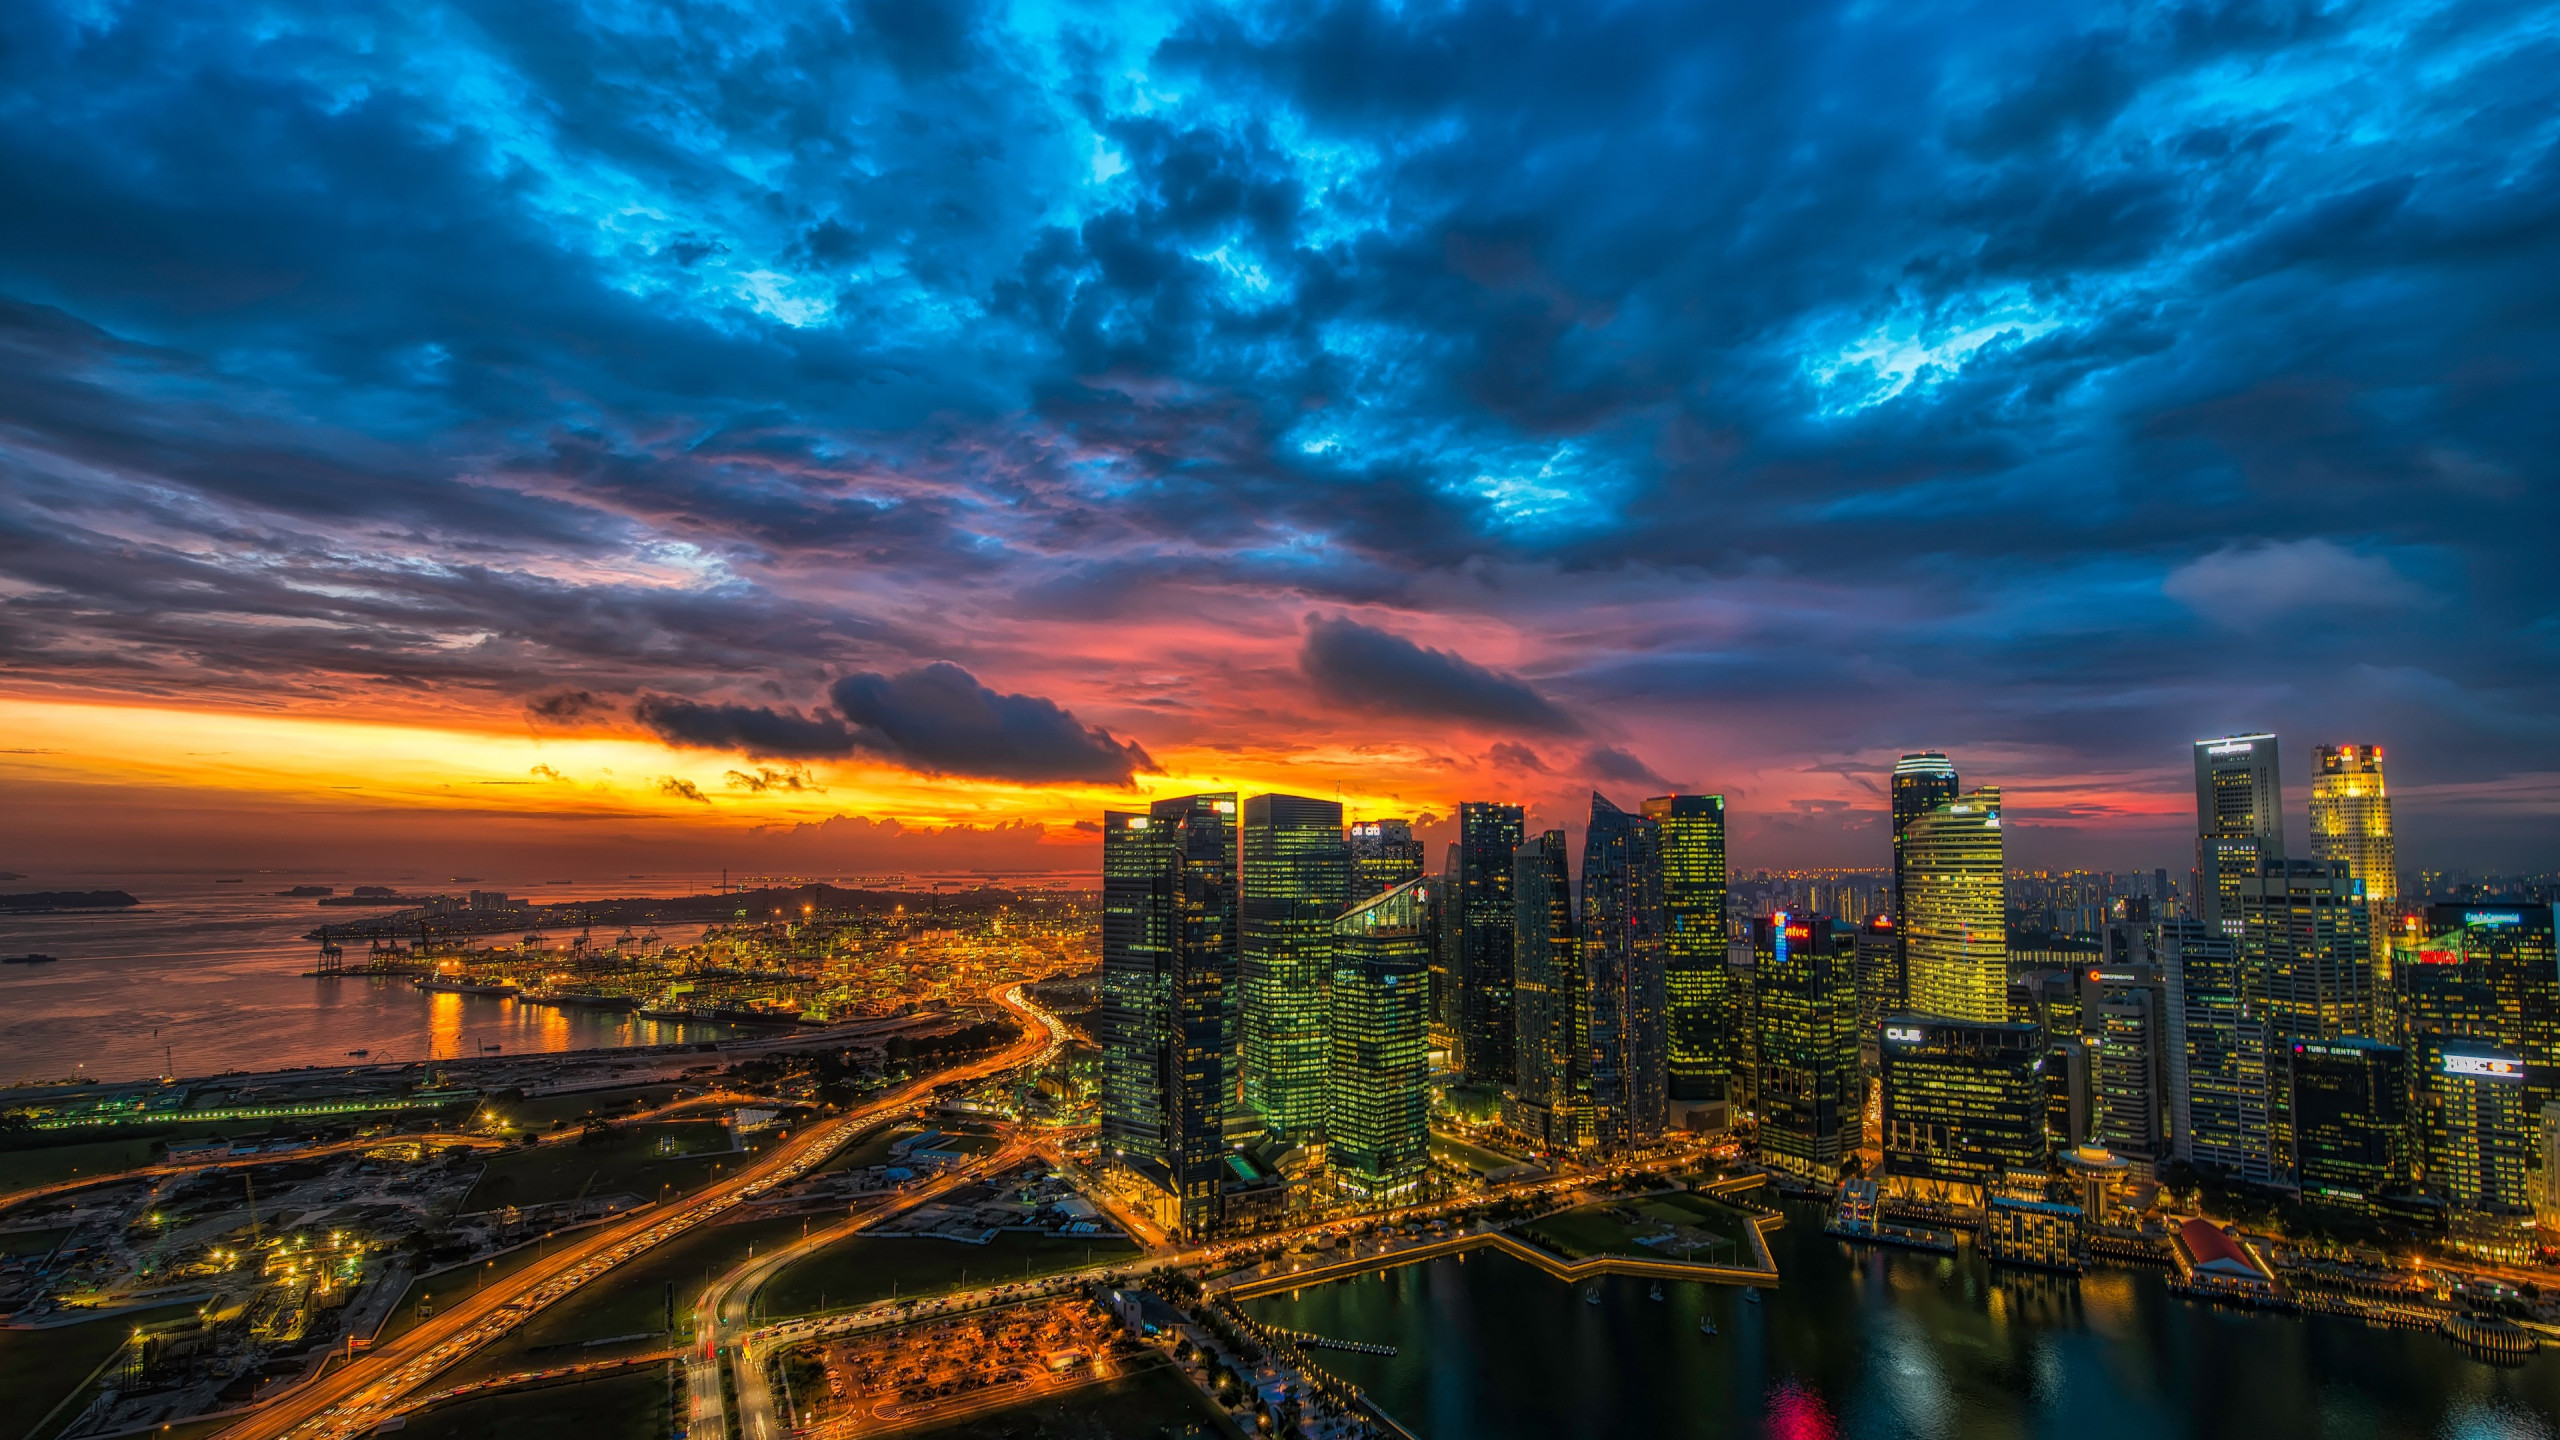 Panoramic view of Singapore wallpaper 2560x1440